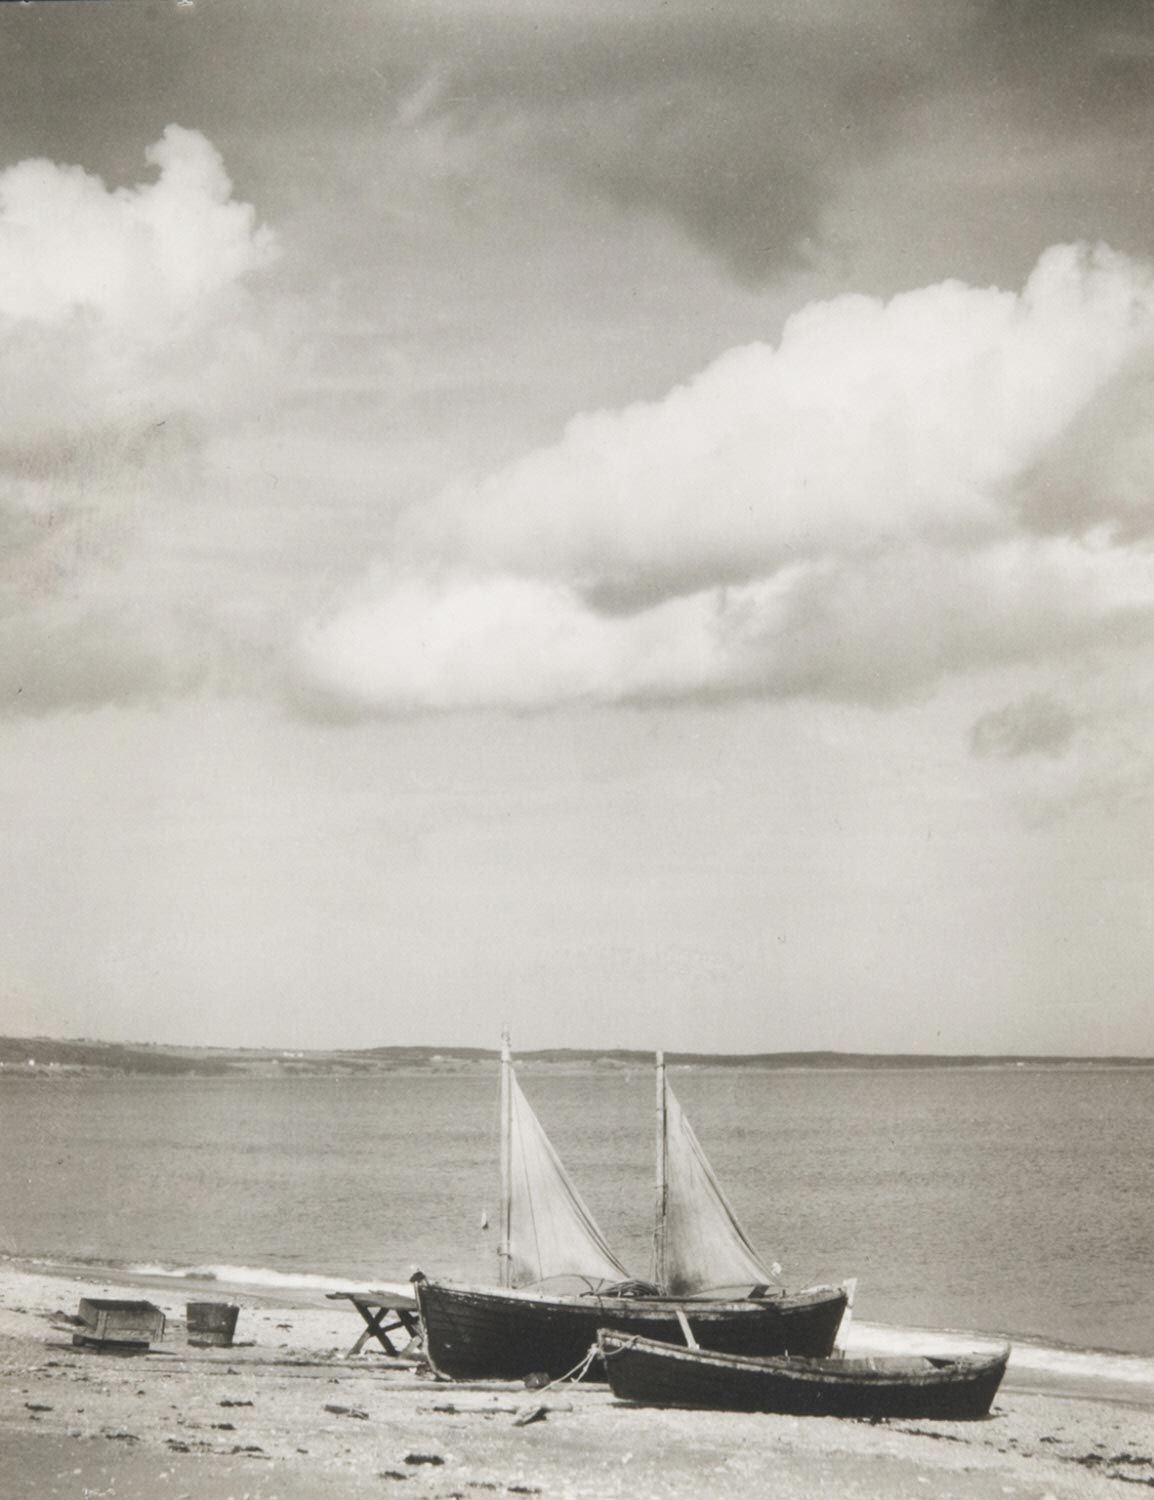 Boats on the Shore (Sails and Clouds), Percé, Gaspé